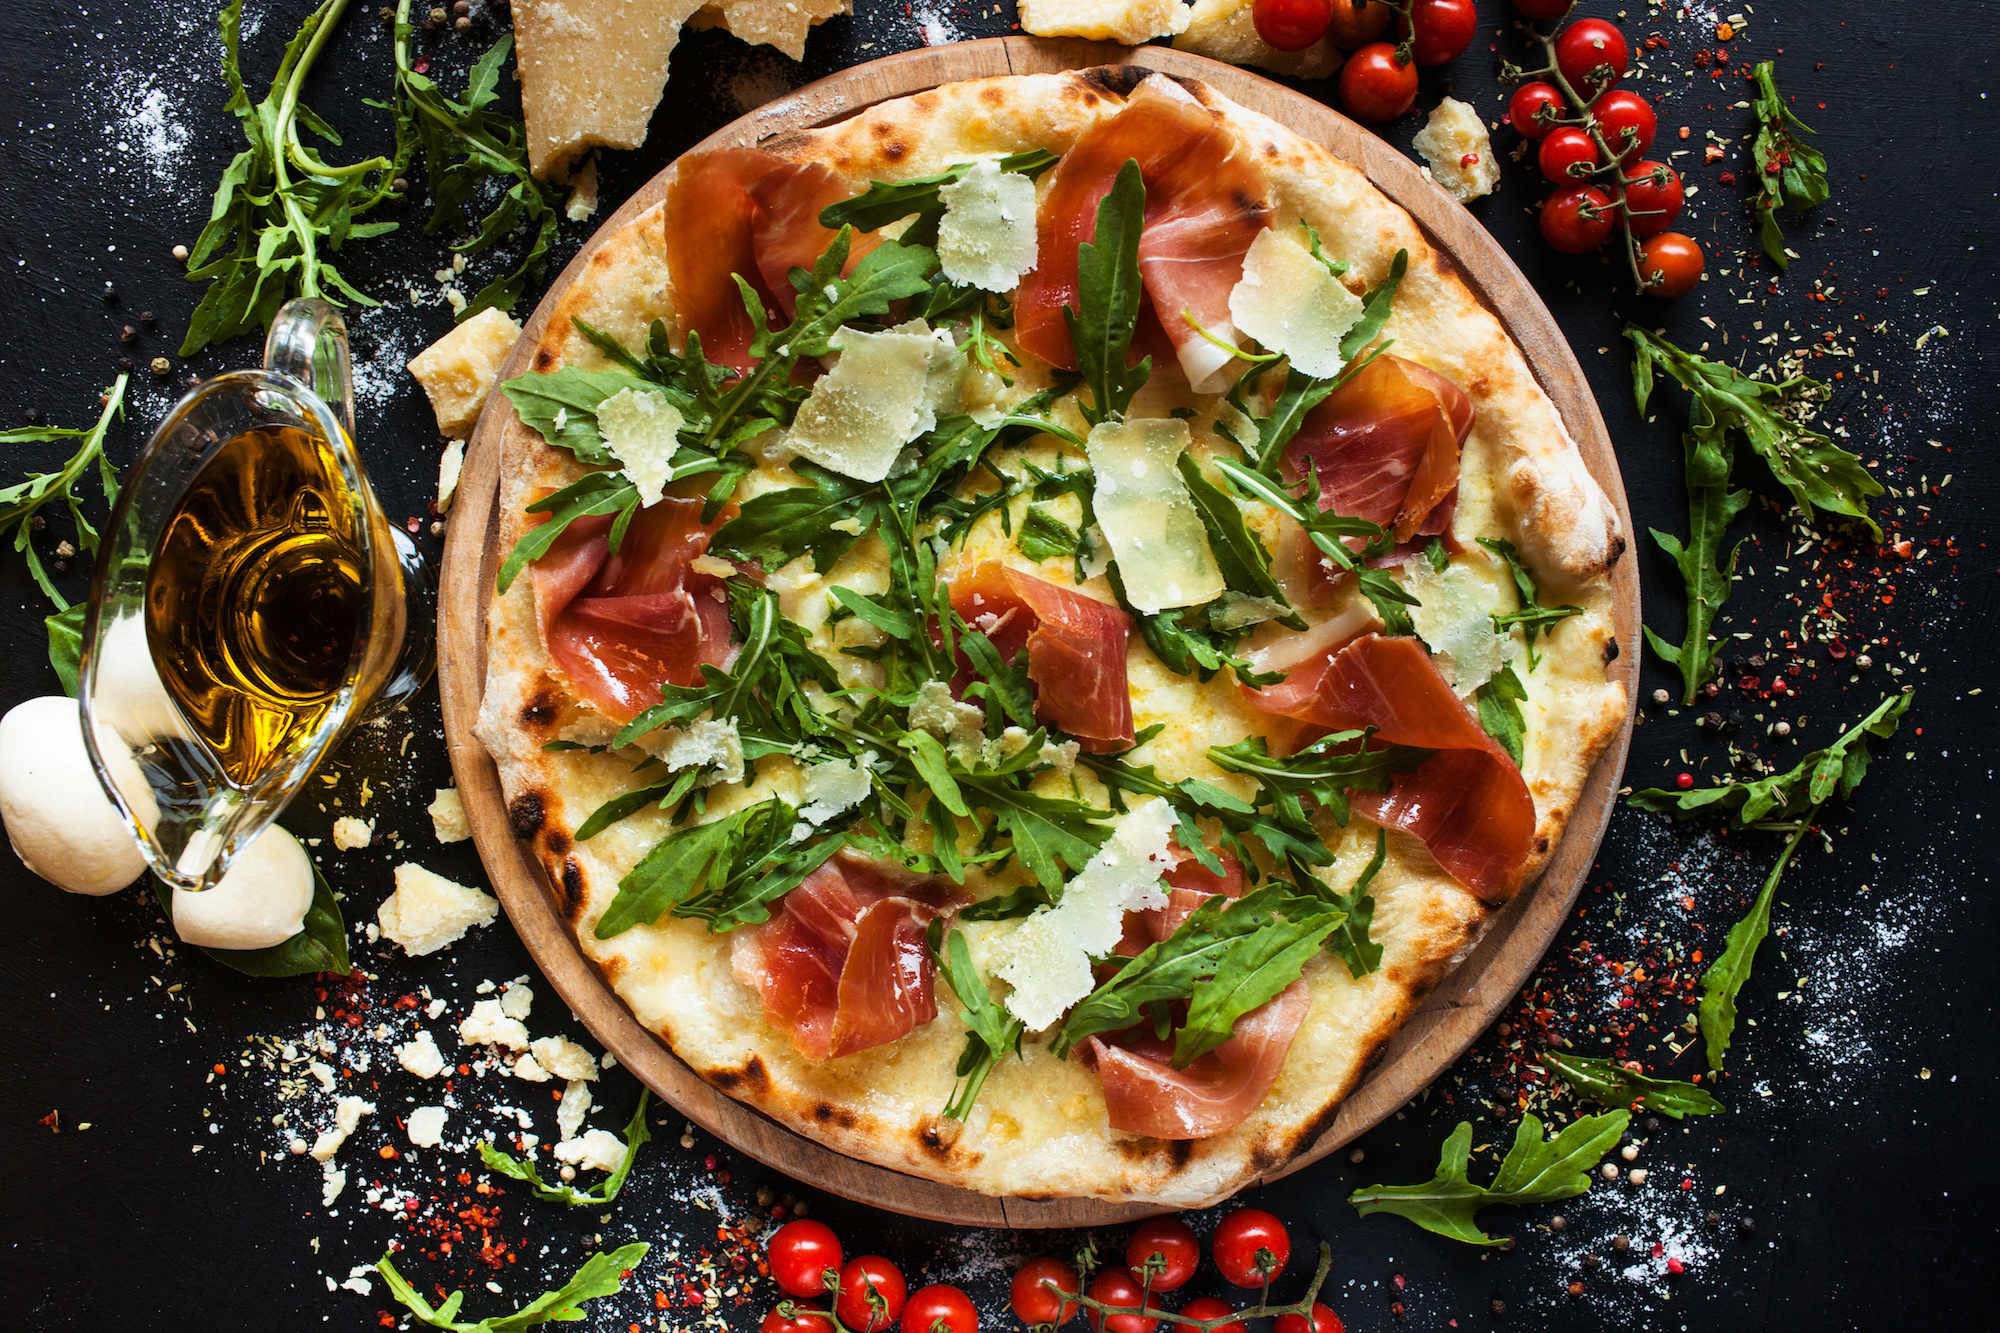 Salmon and arugula pizza. Light and tasty restaurant meal for a foodie